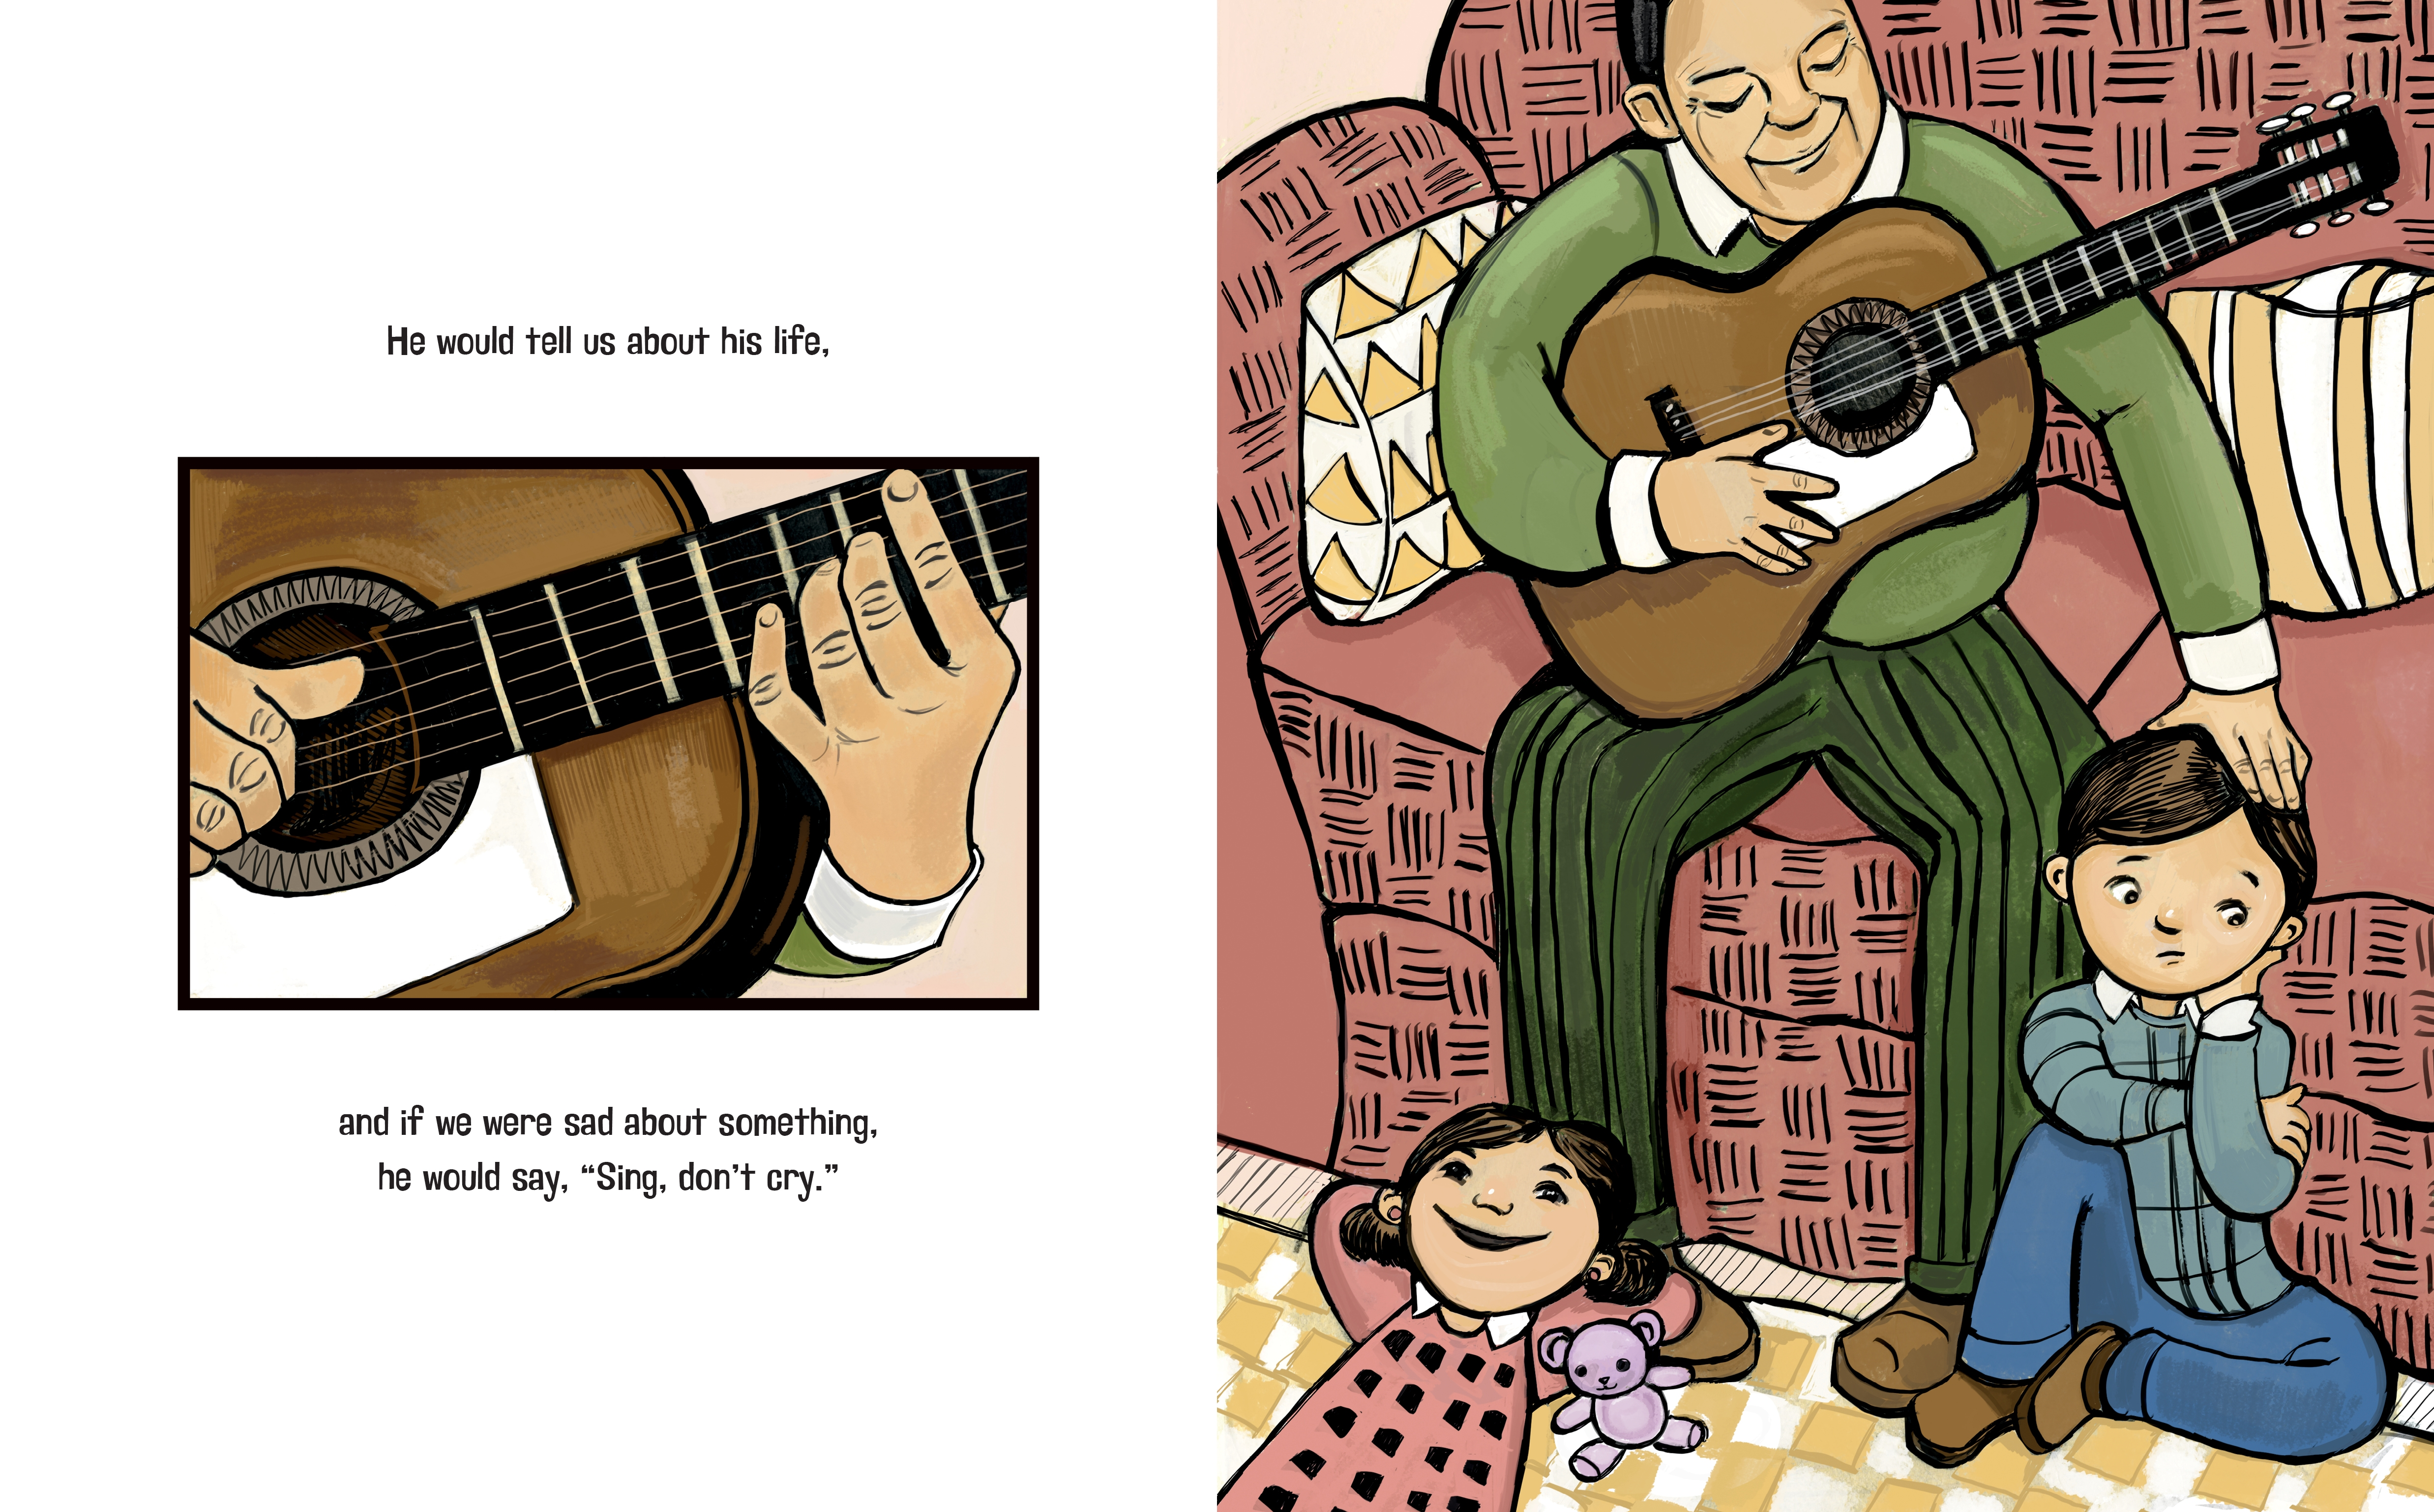 celebrate-picture-books-picture-book-review-sing-don't-cry-playing-guitar